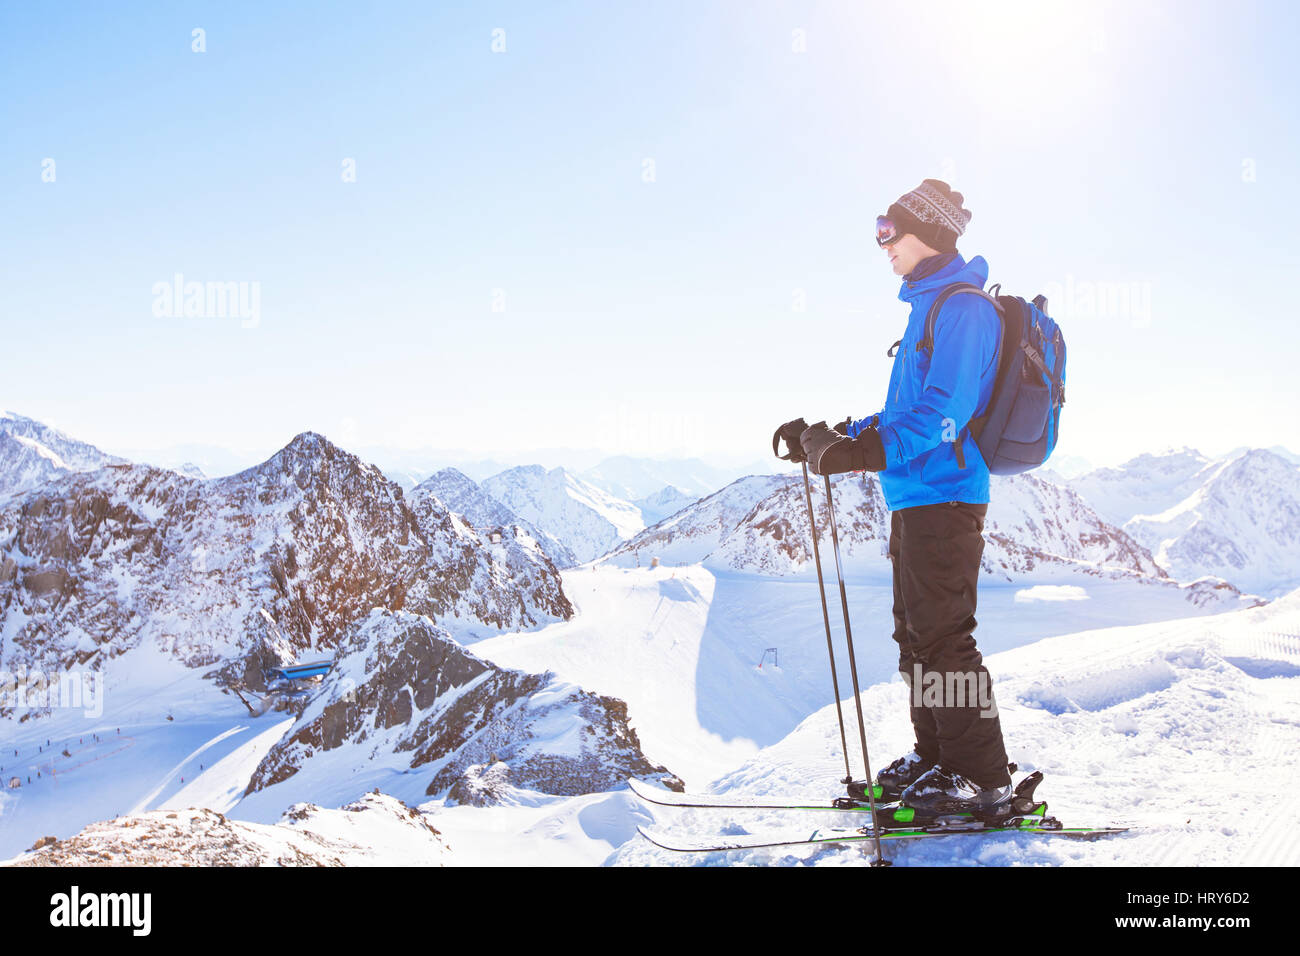 skiing background, skier in beautiful mountain landscape, winter holidays in Austria - Stock Image